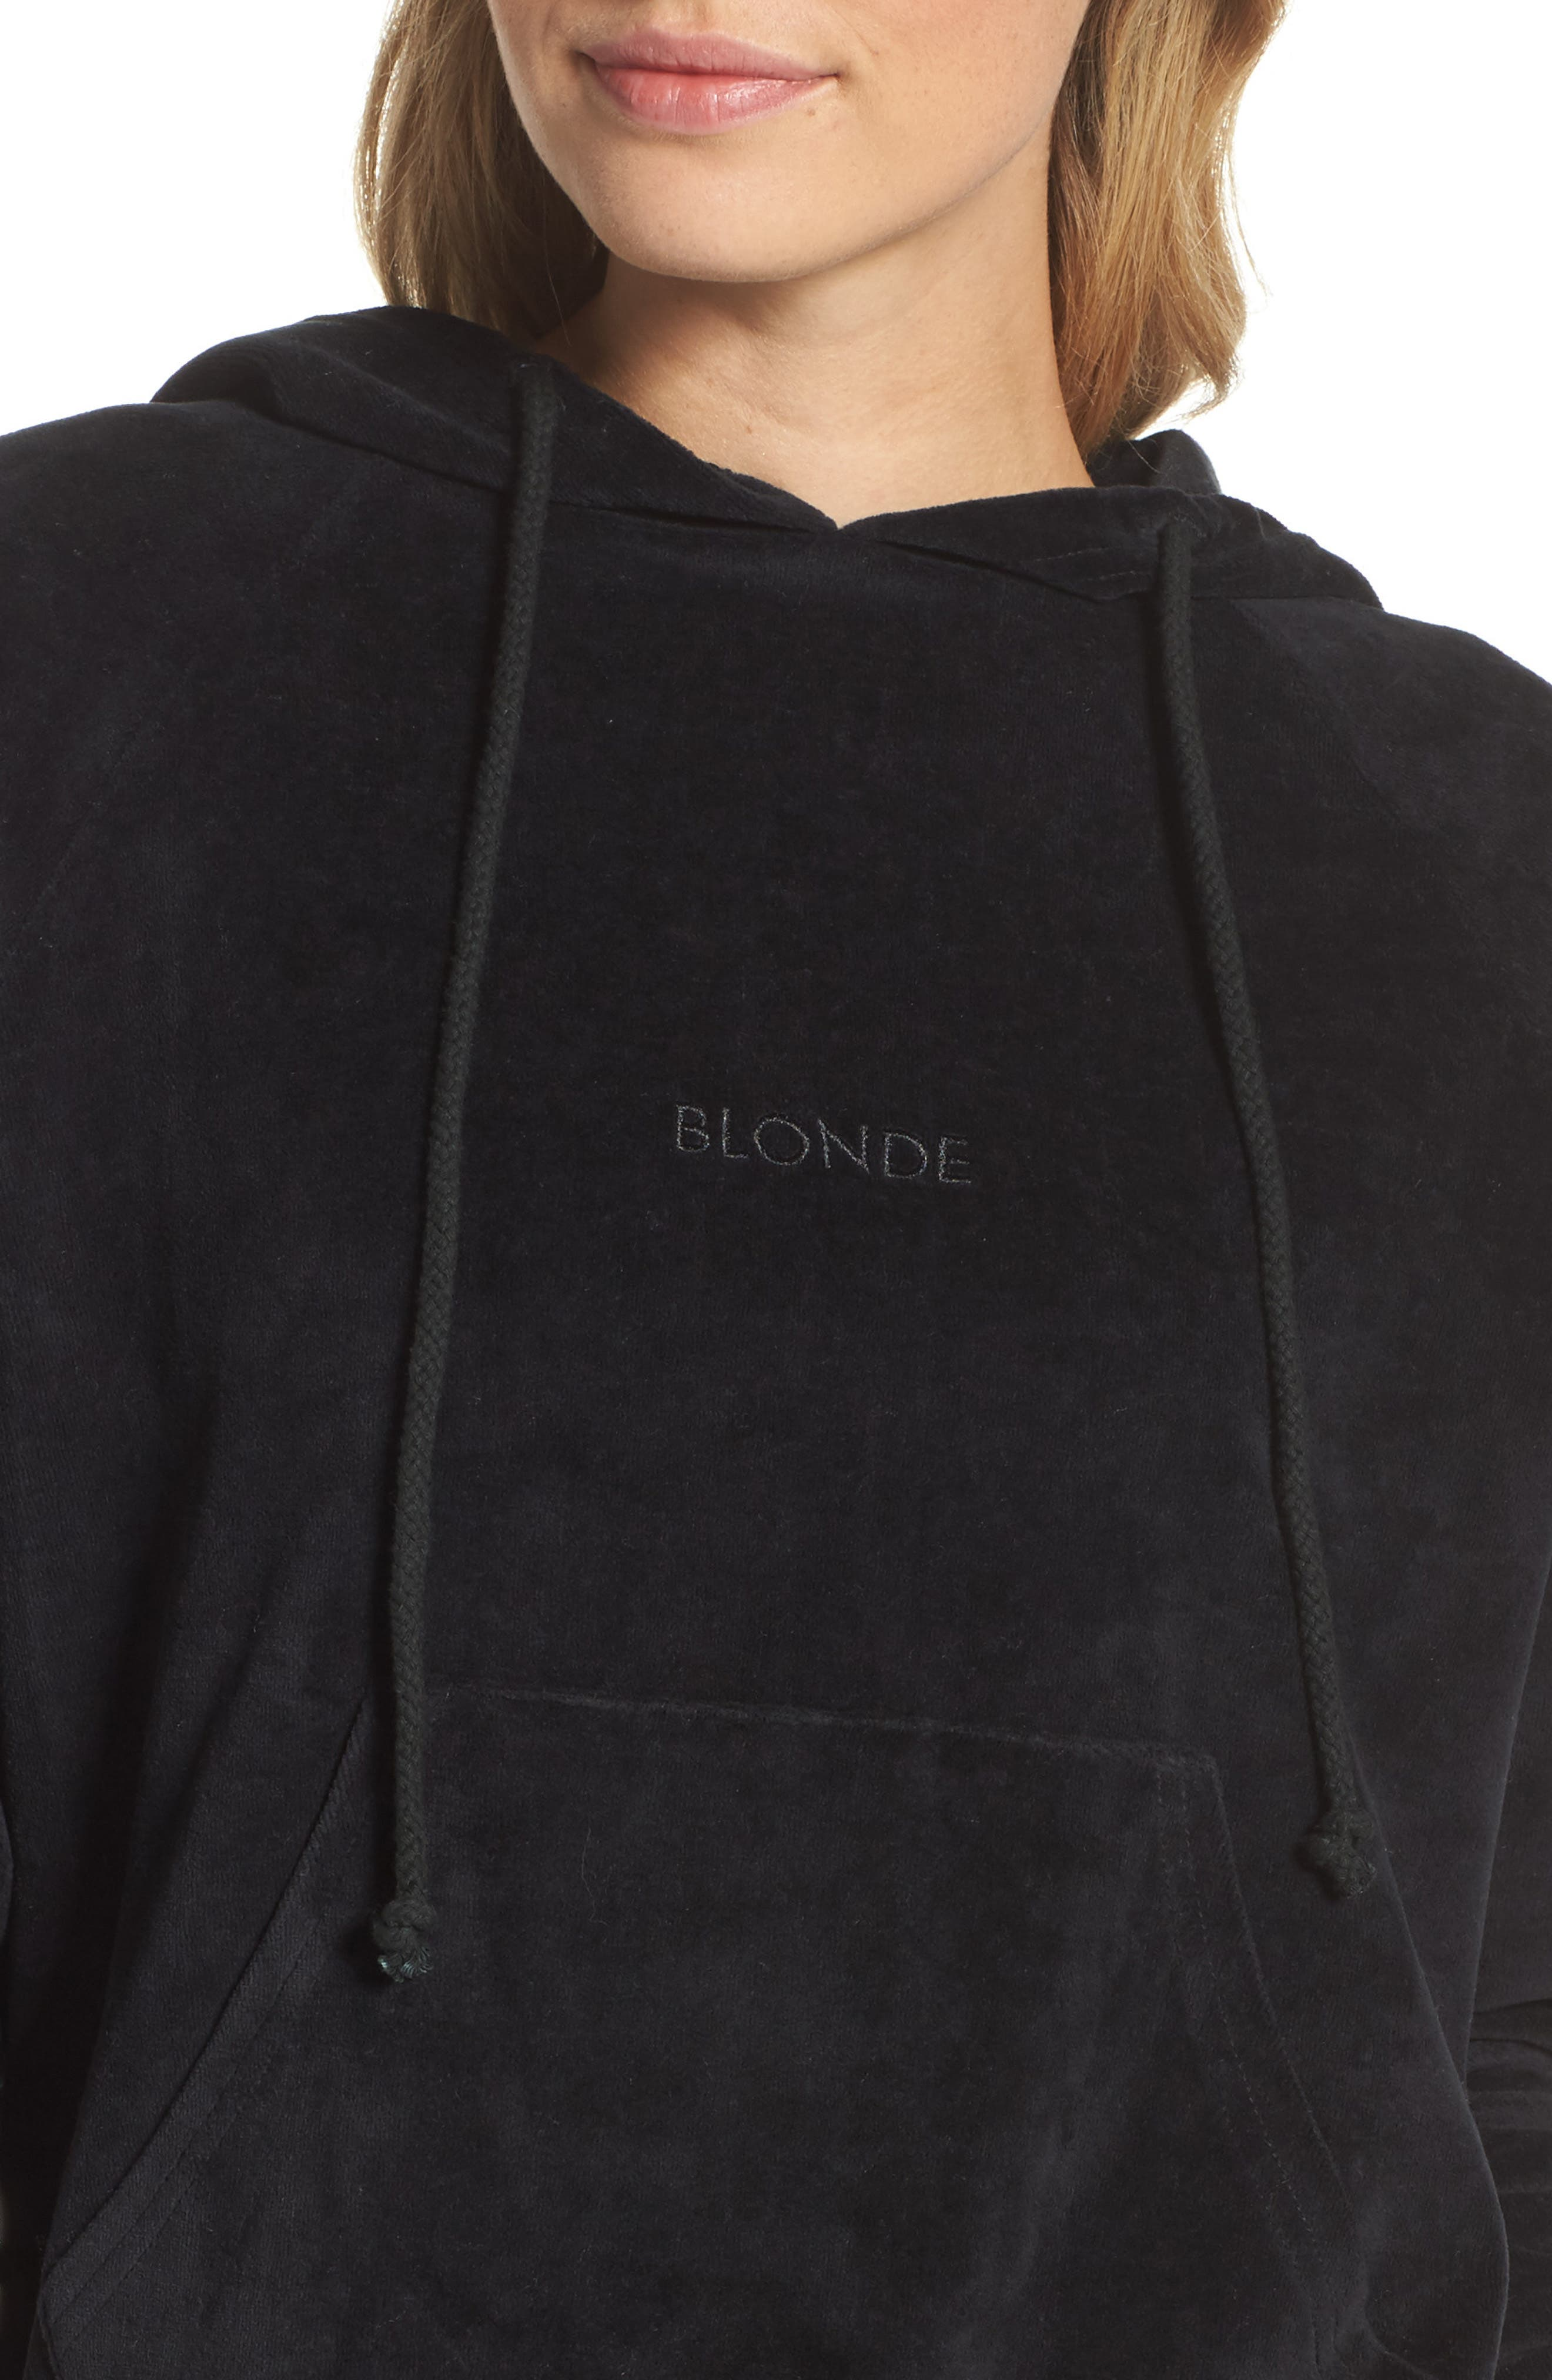 Blonde Embroidered Velour Hoodie,                             Alternate thumbnail 4, color,